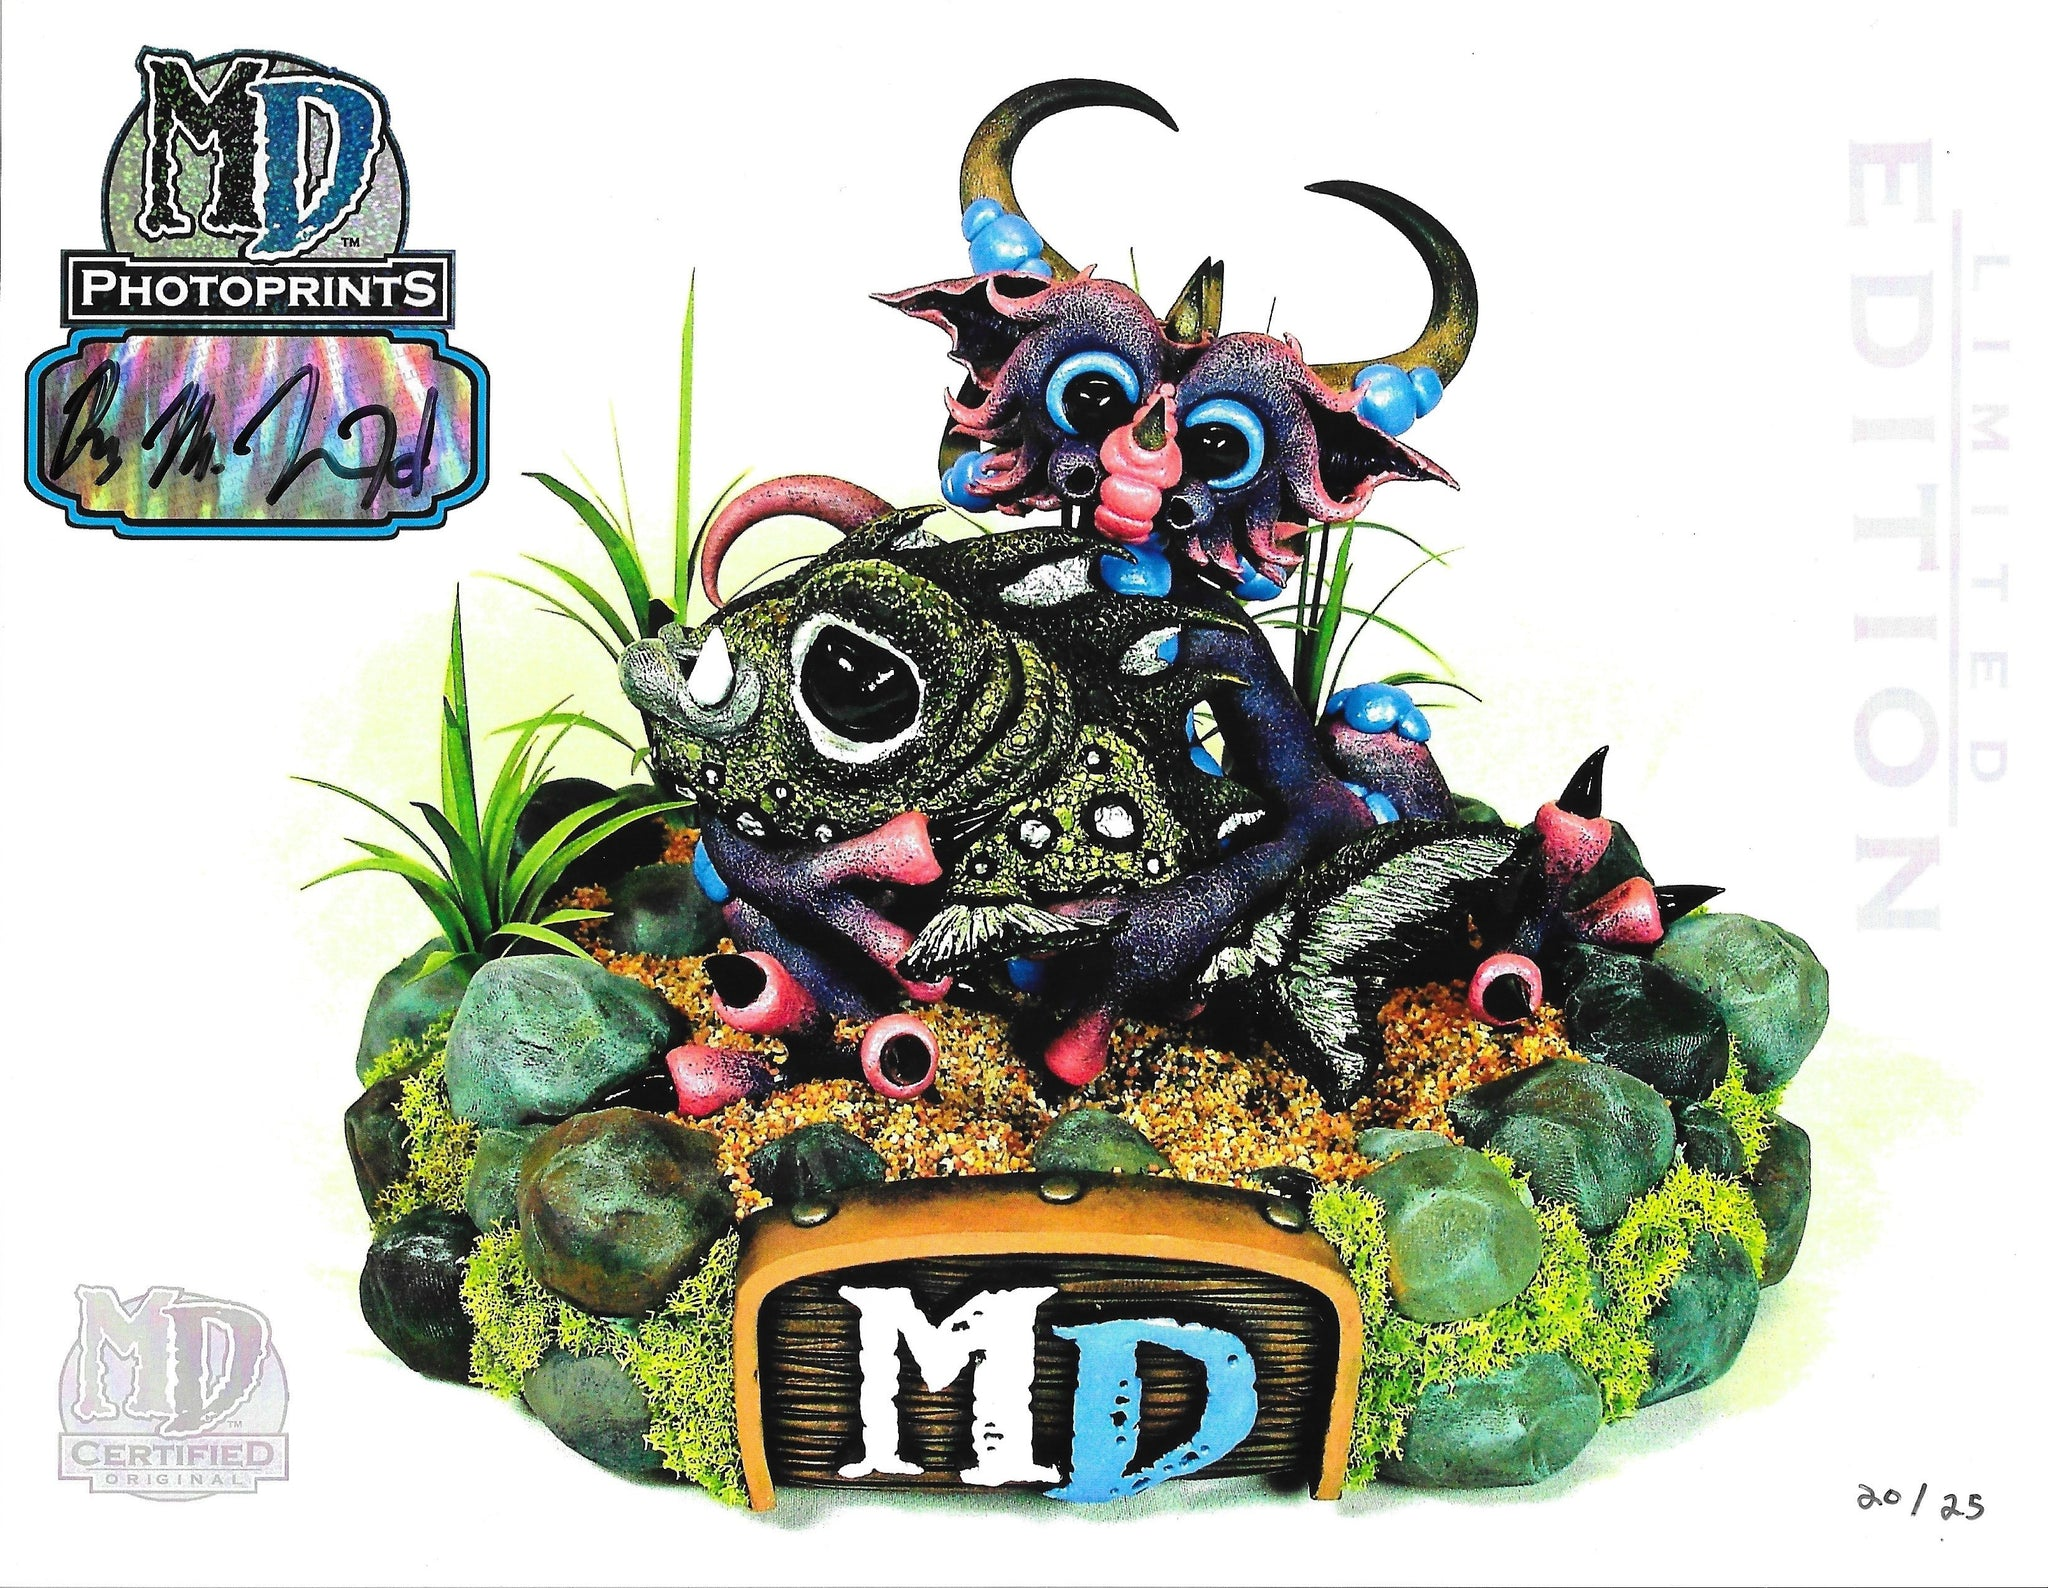 "MD LIMITED EDITION AUTOGRAPHED 8.5"" x 11"" PHOTOPRINT- CUDDLEFISH DRAGON #/25 - MacLeod Dragons"